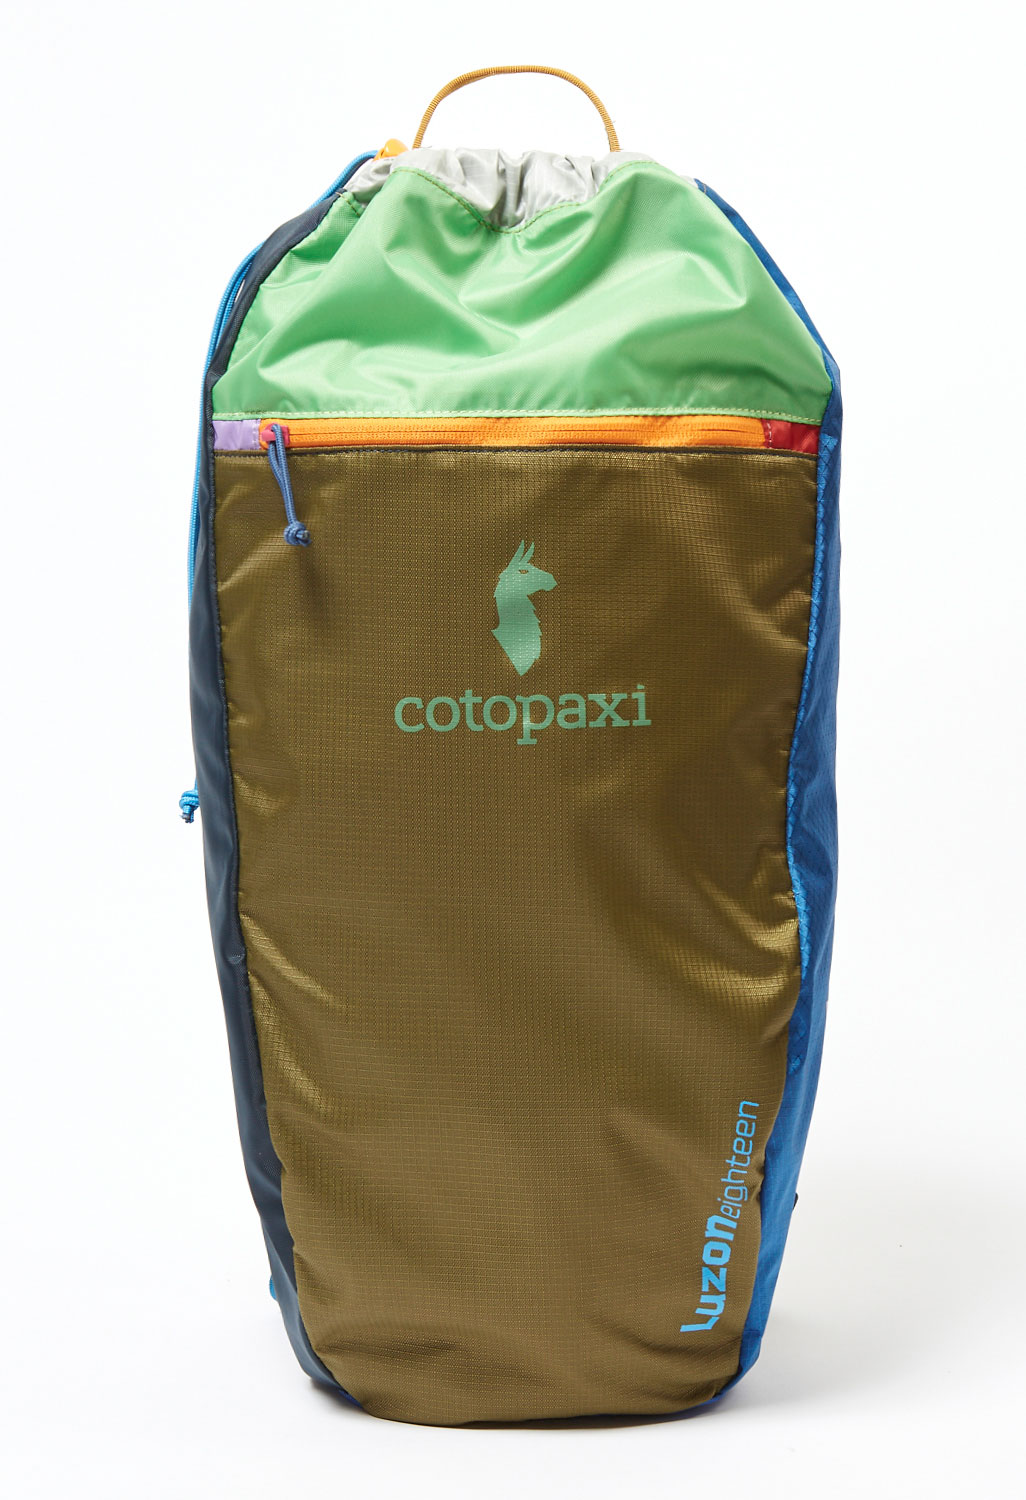 Cotopaxi Luzon 18L Backpack 0